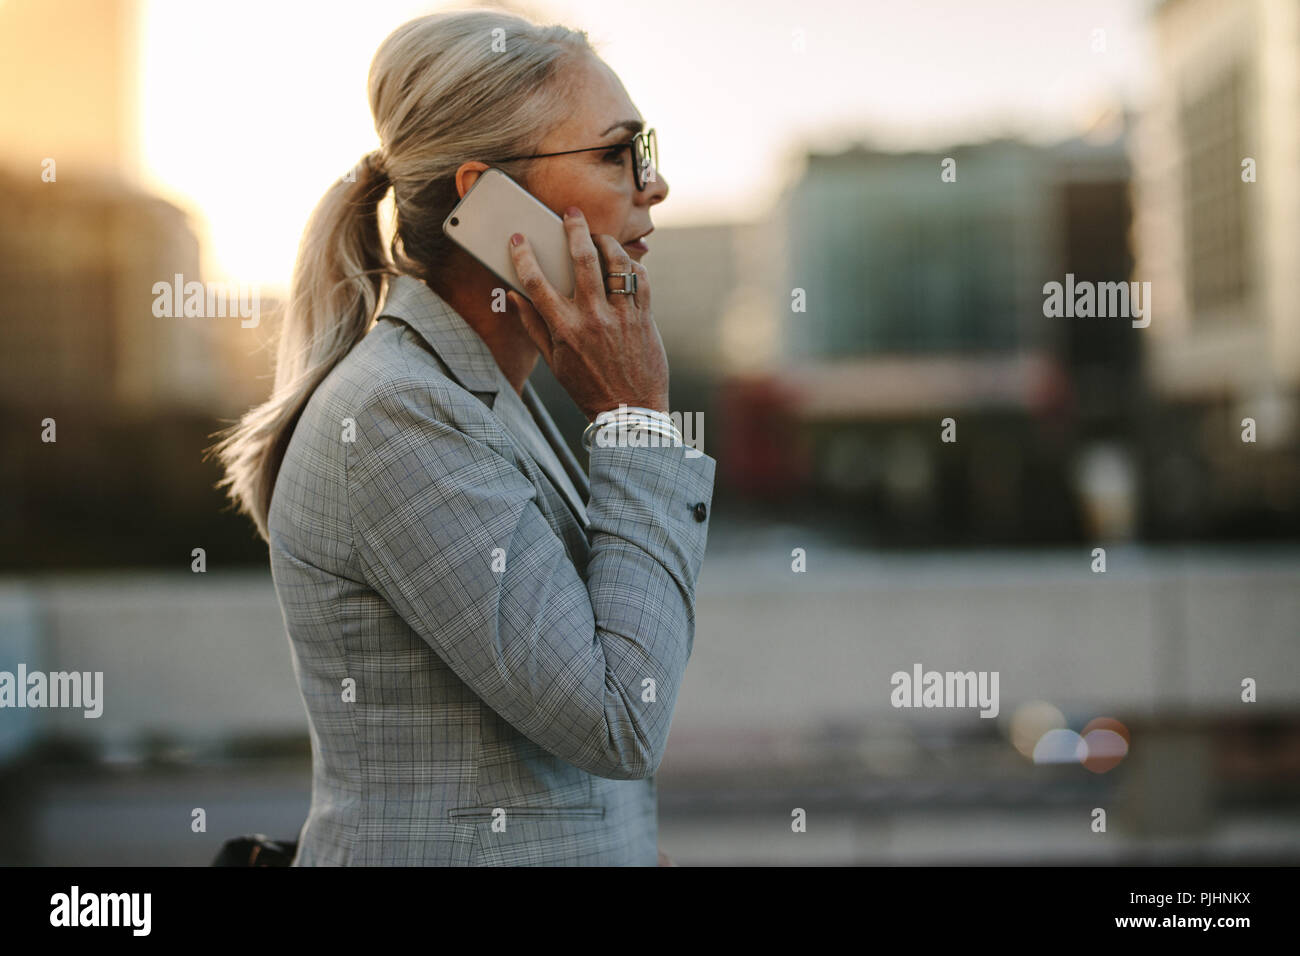 Side view of senior business professional walking outside on road talking on cell phone. Mature businesswoman walking outdoors on street with mobile p - Stock Image